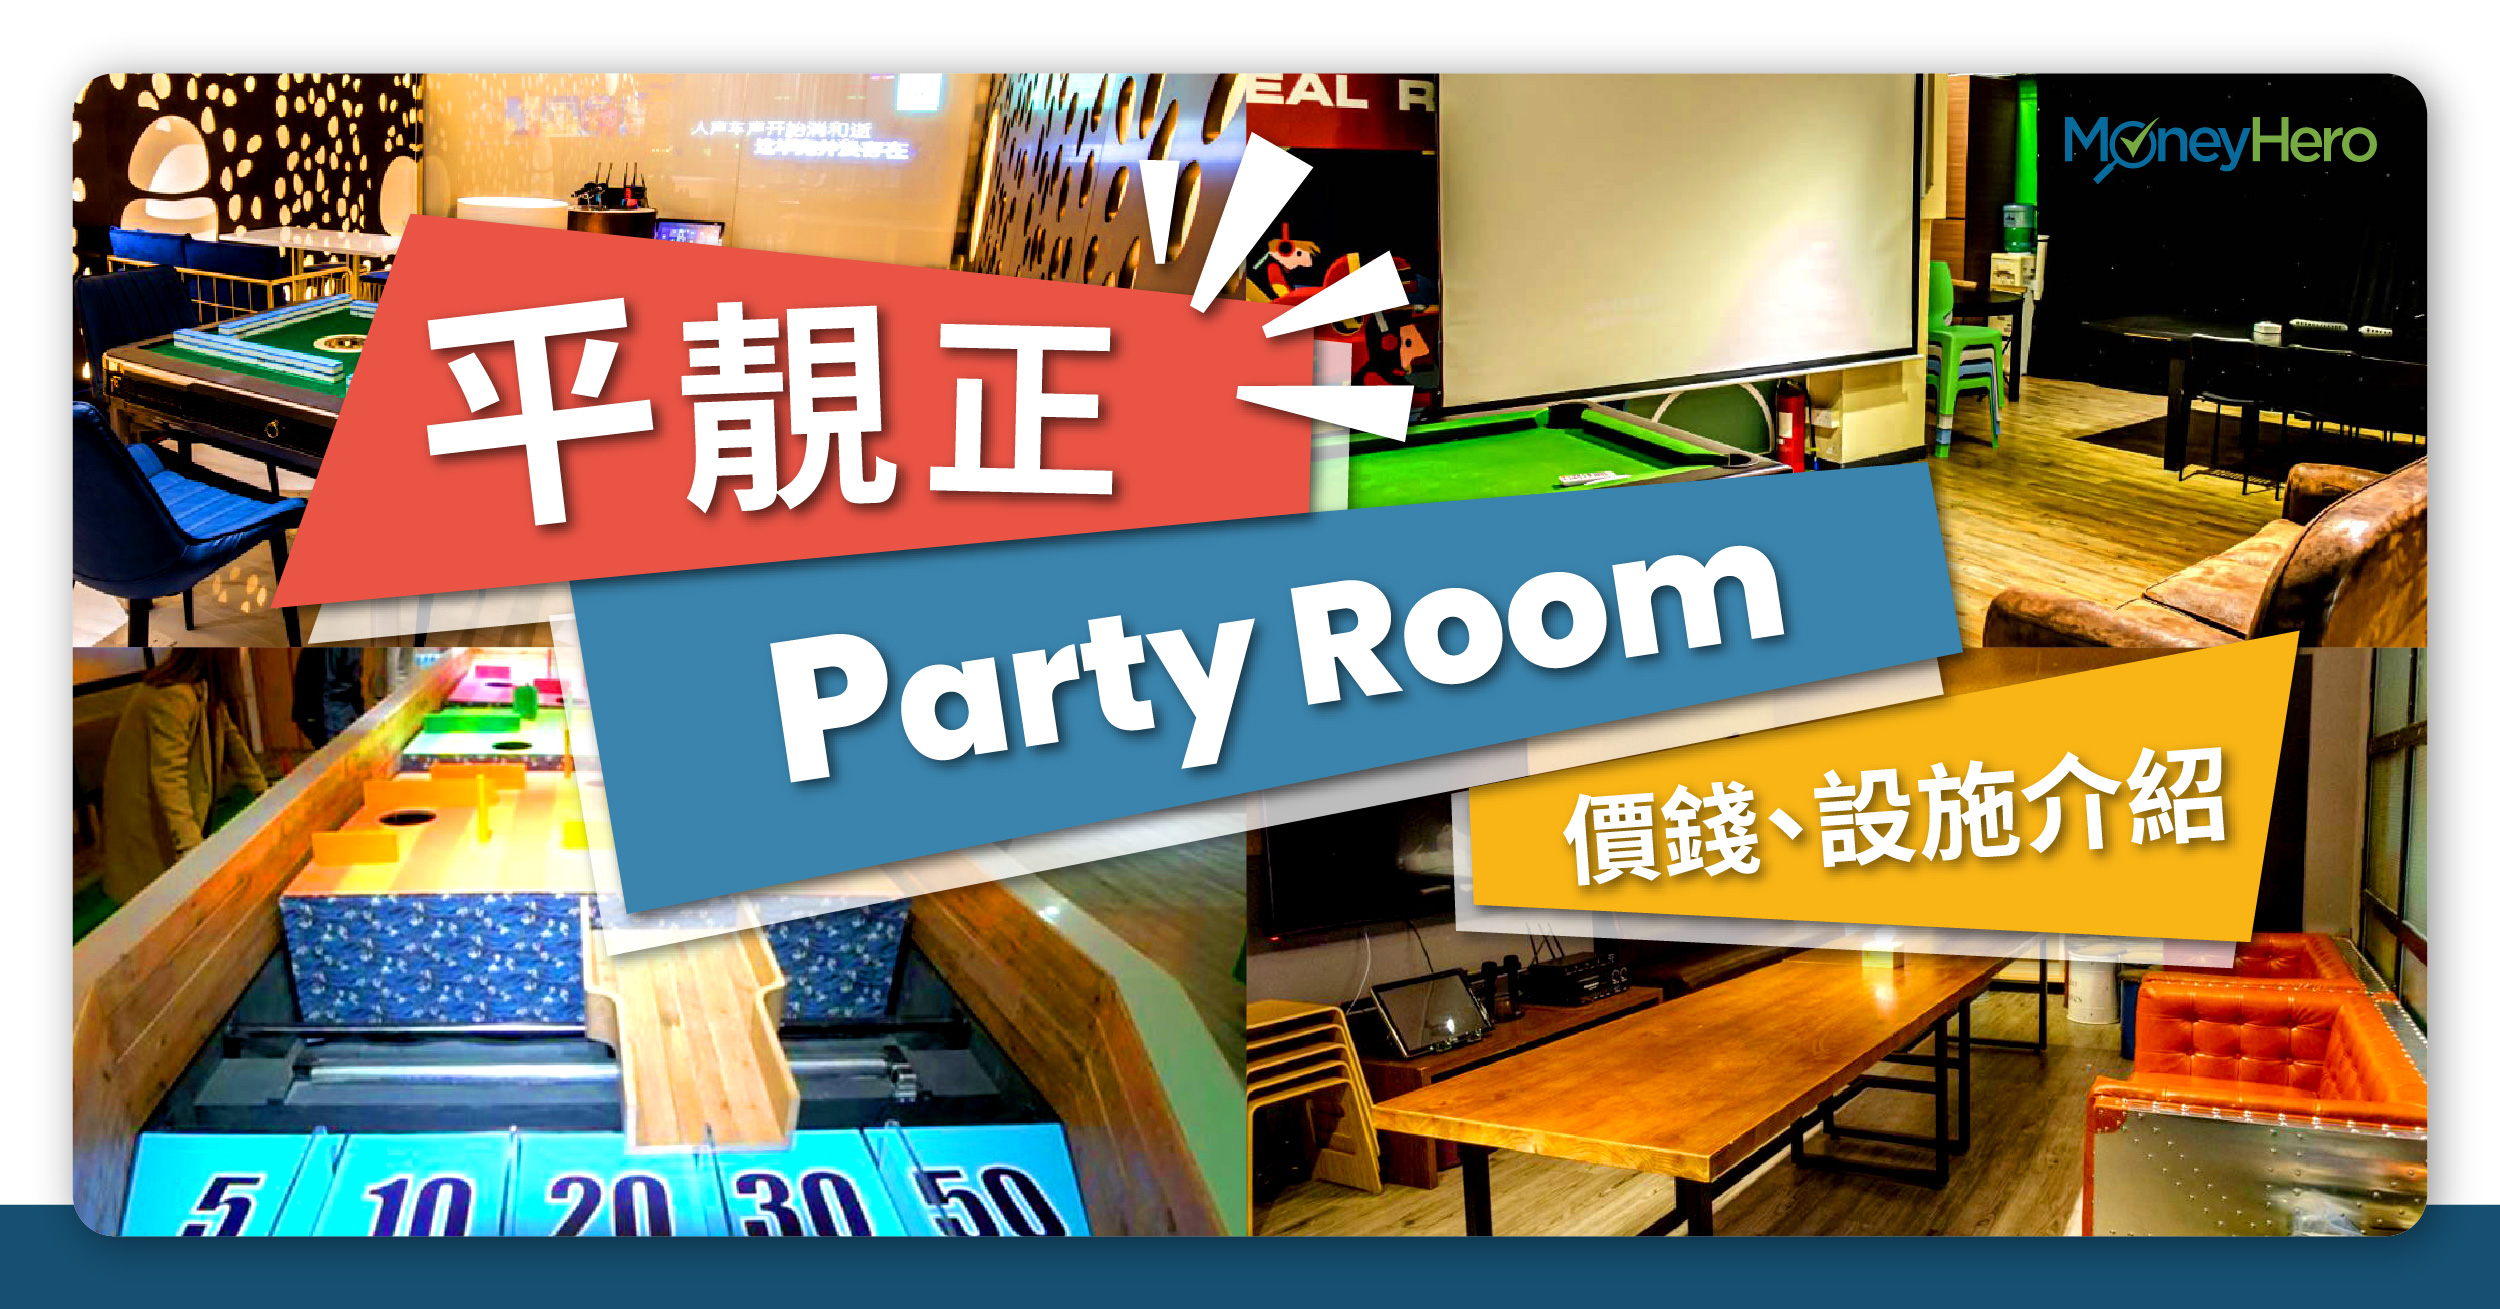 Party Room推介-香港平靚正Party Room-價錢-設施